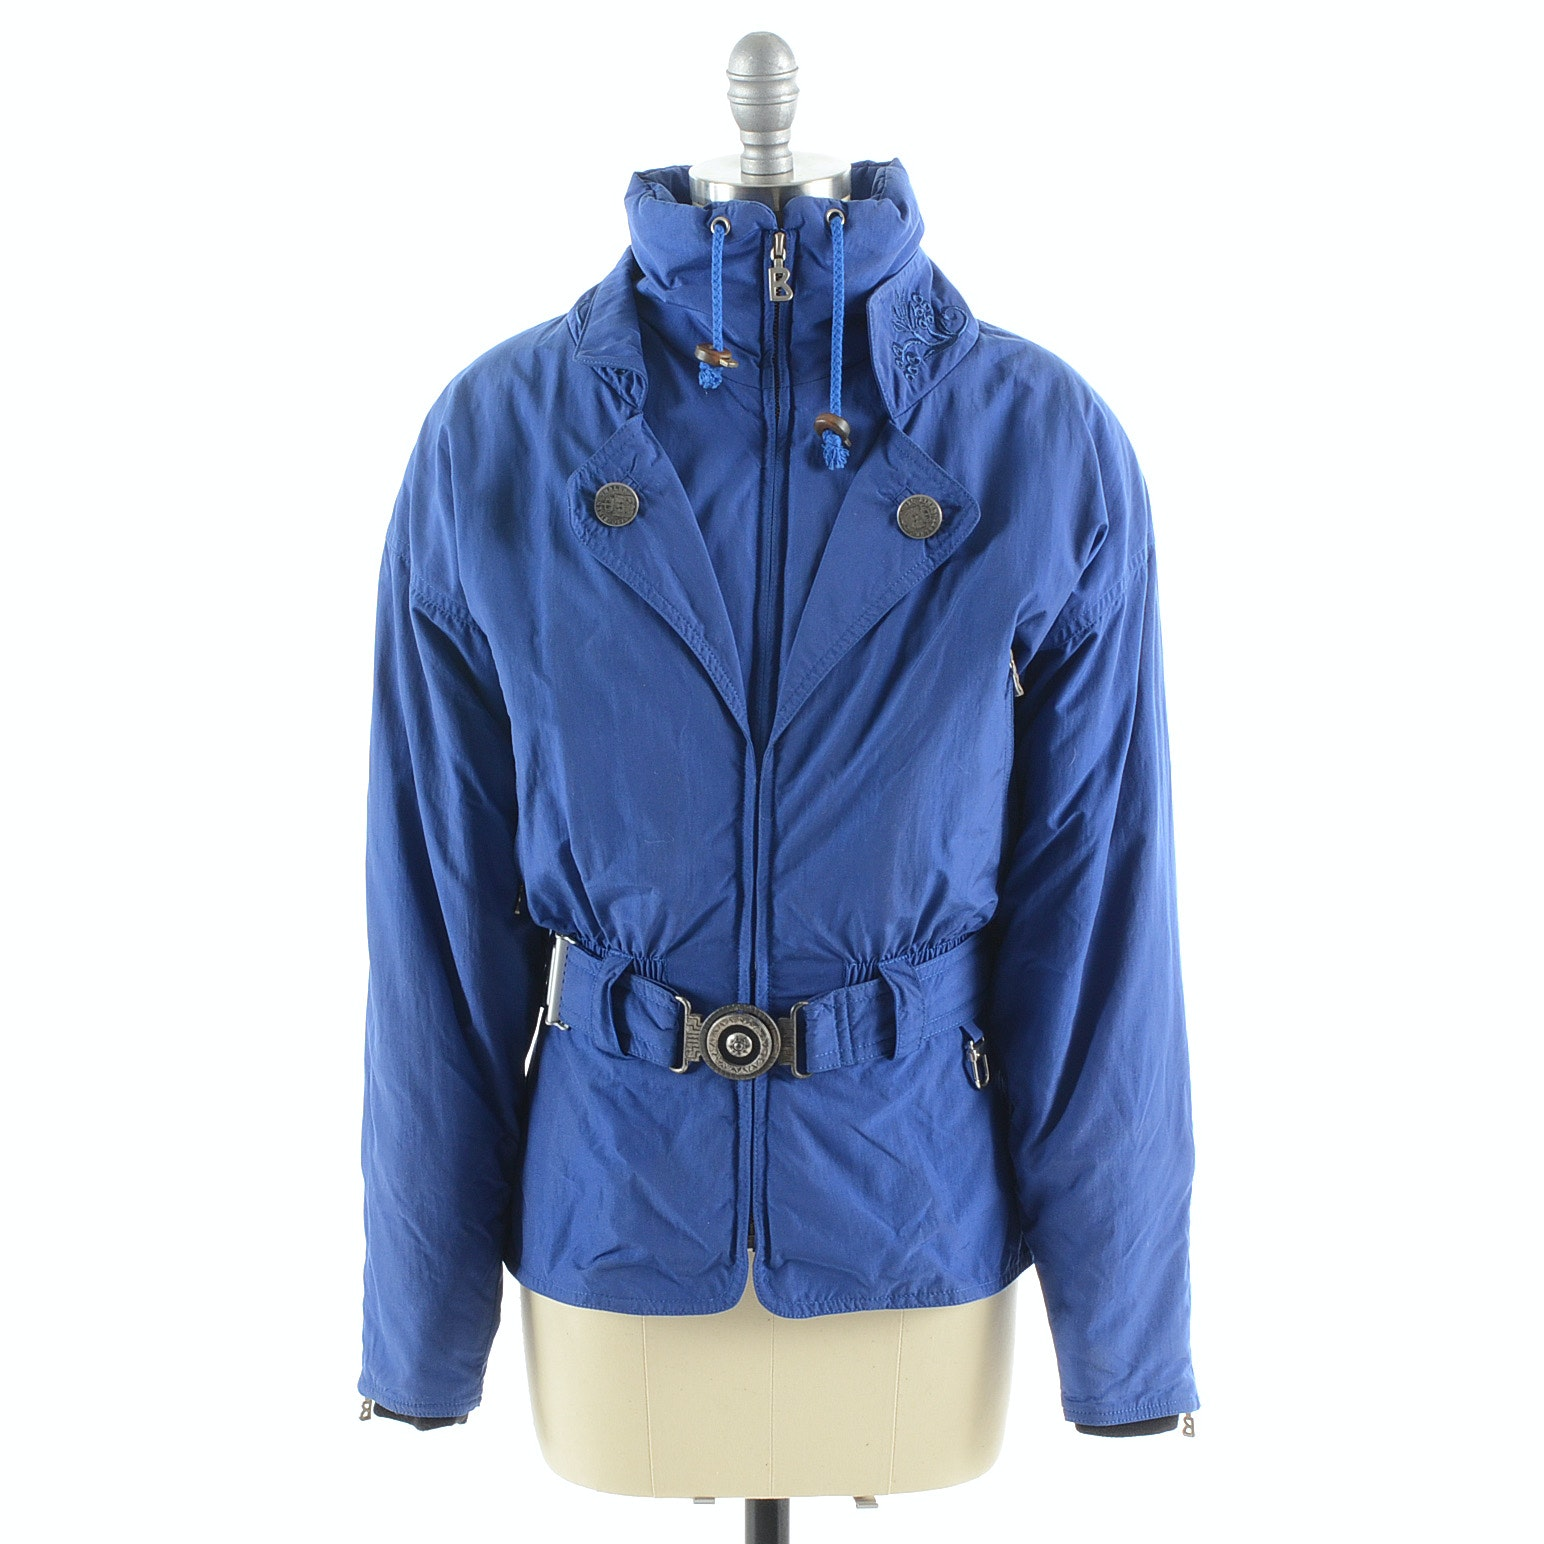 Bogner Ski Jacket in Blue with Embroidery